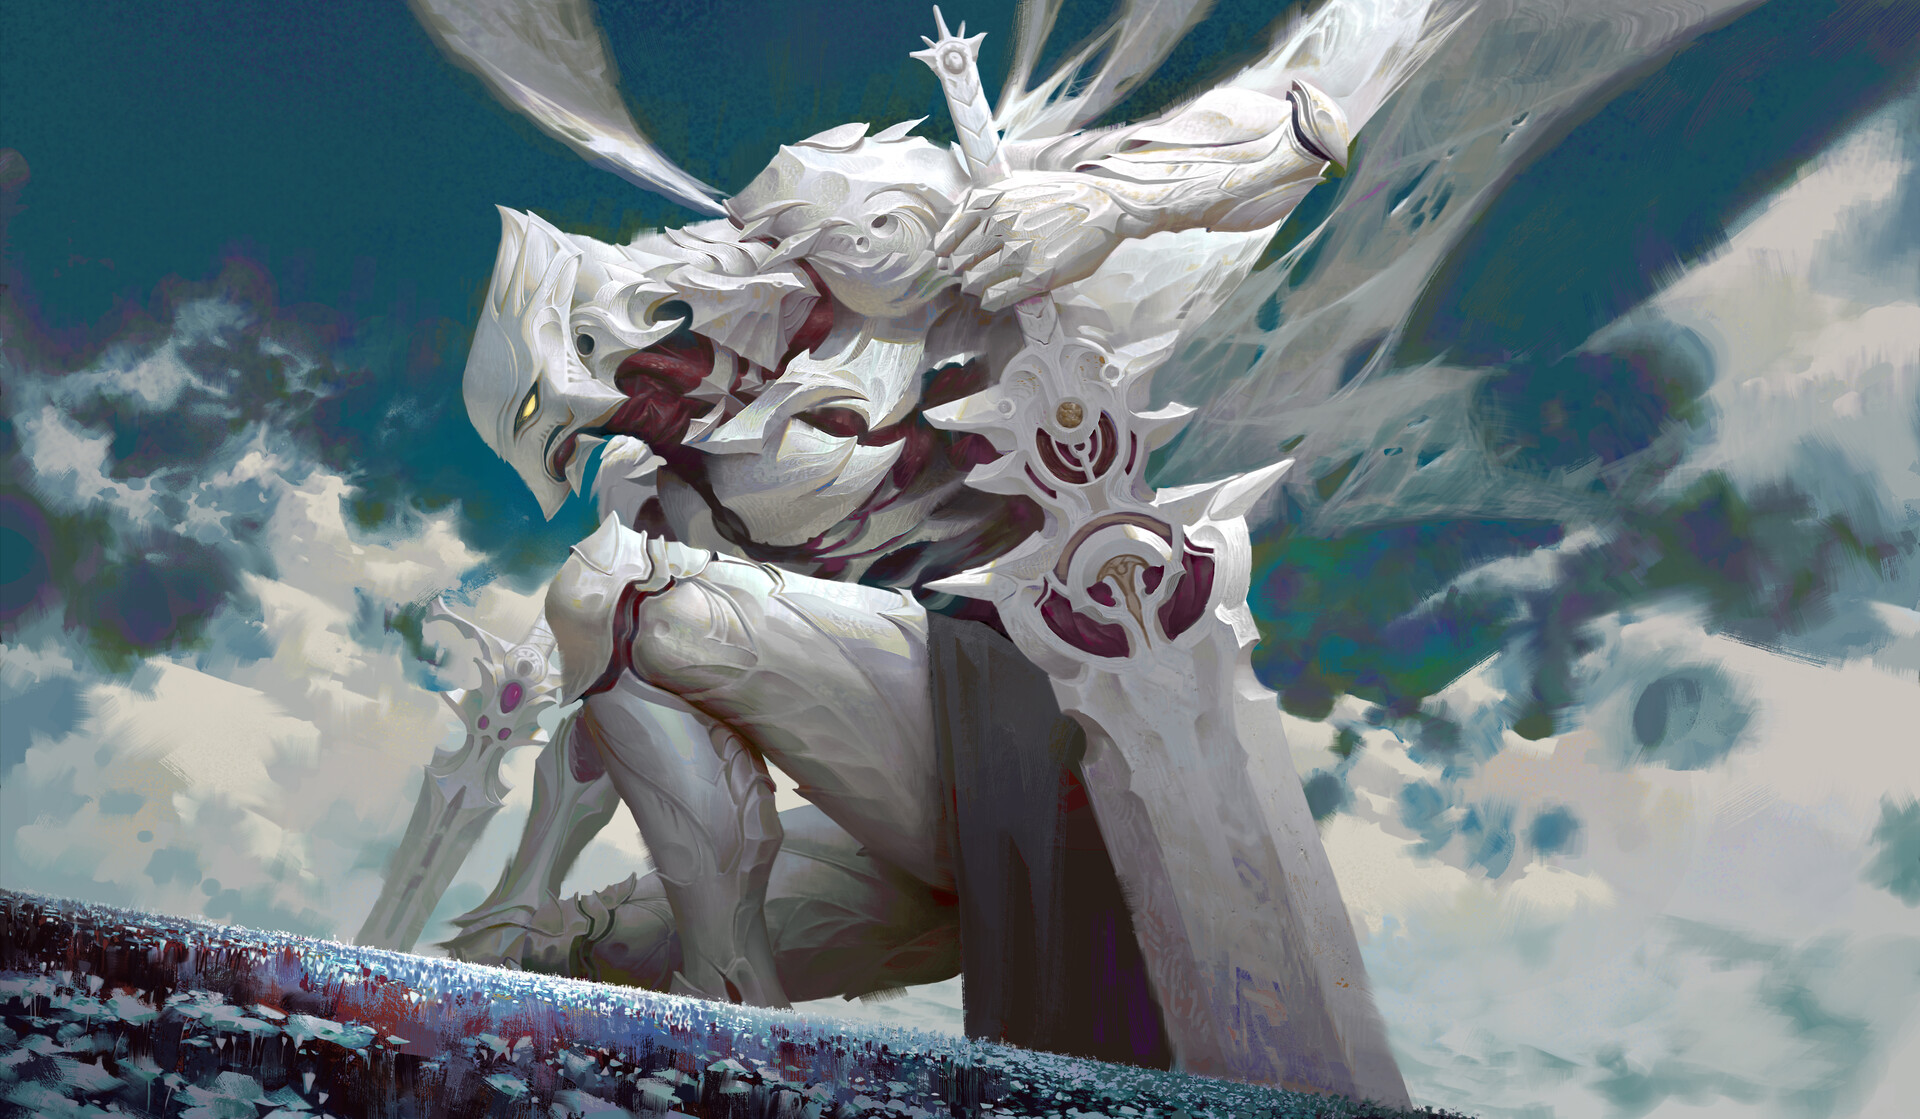 The Exquisite Fantasy Artworks of Ya Lun